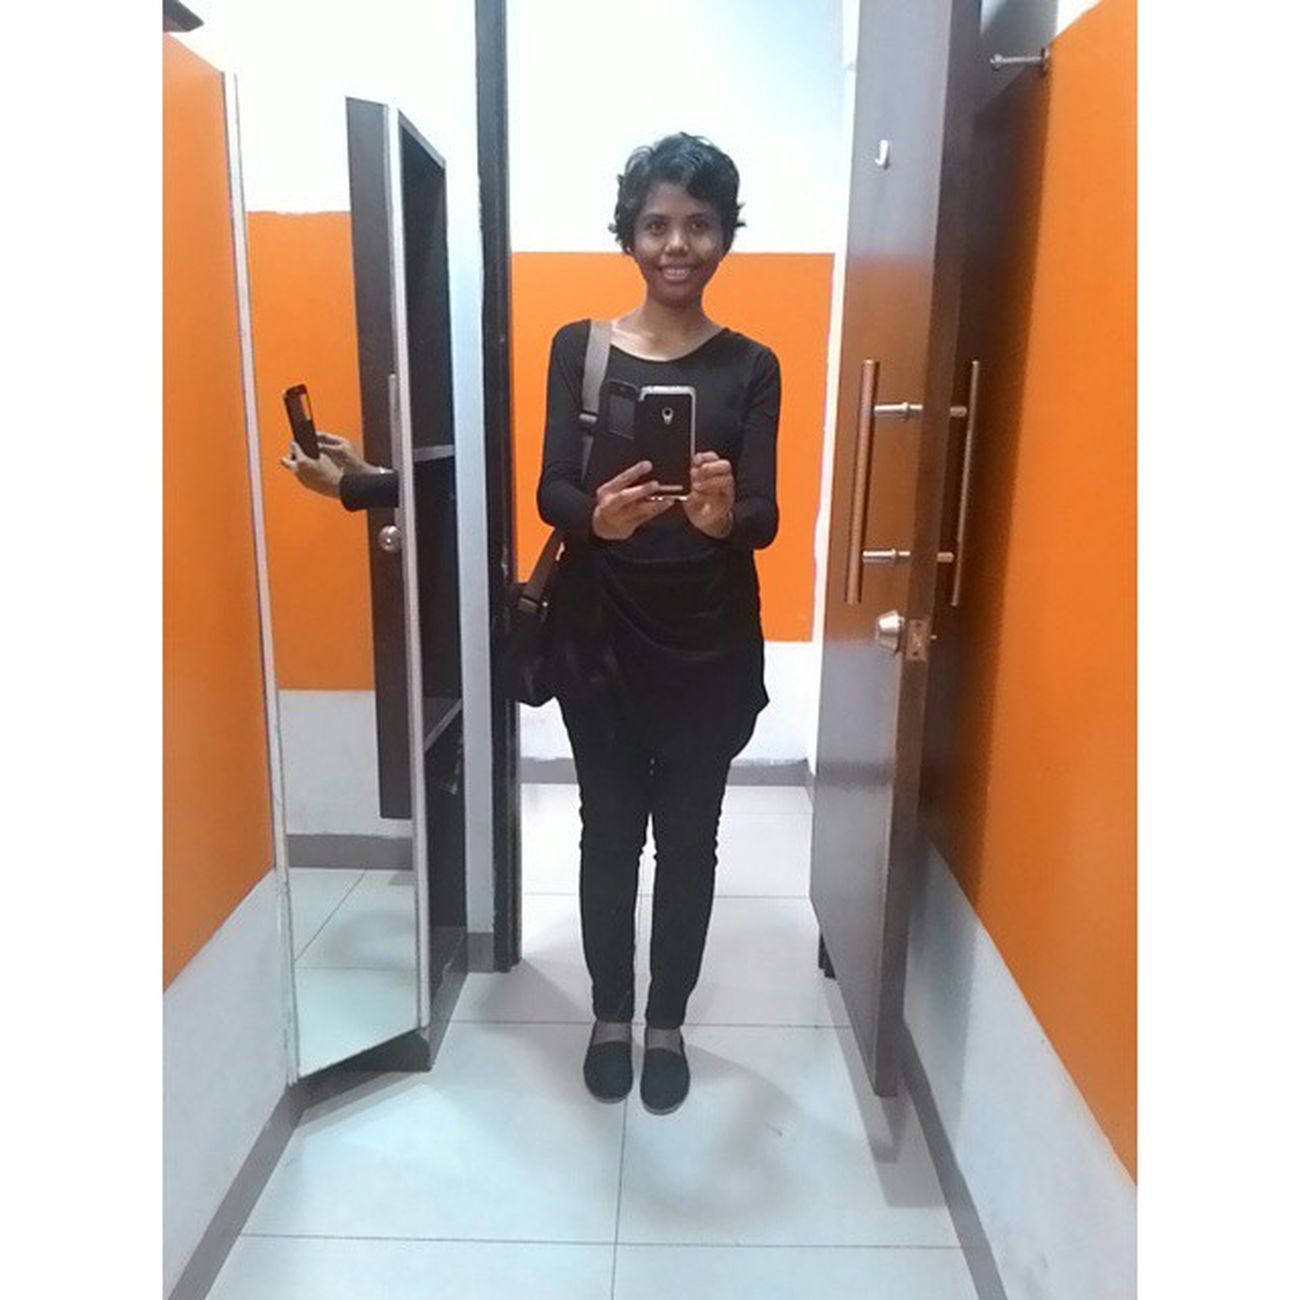 Me Indonesianwomen Selfiesunday Favourite Style Blackshirt